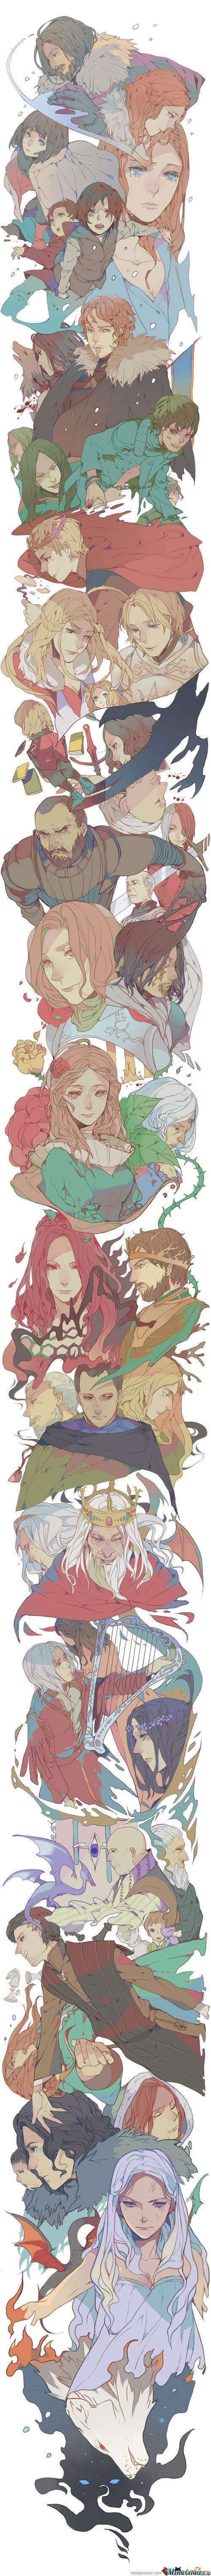 Game Of Thrones/a Song Of Ice And Fire Manga Style